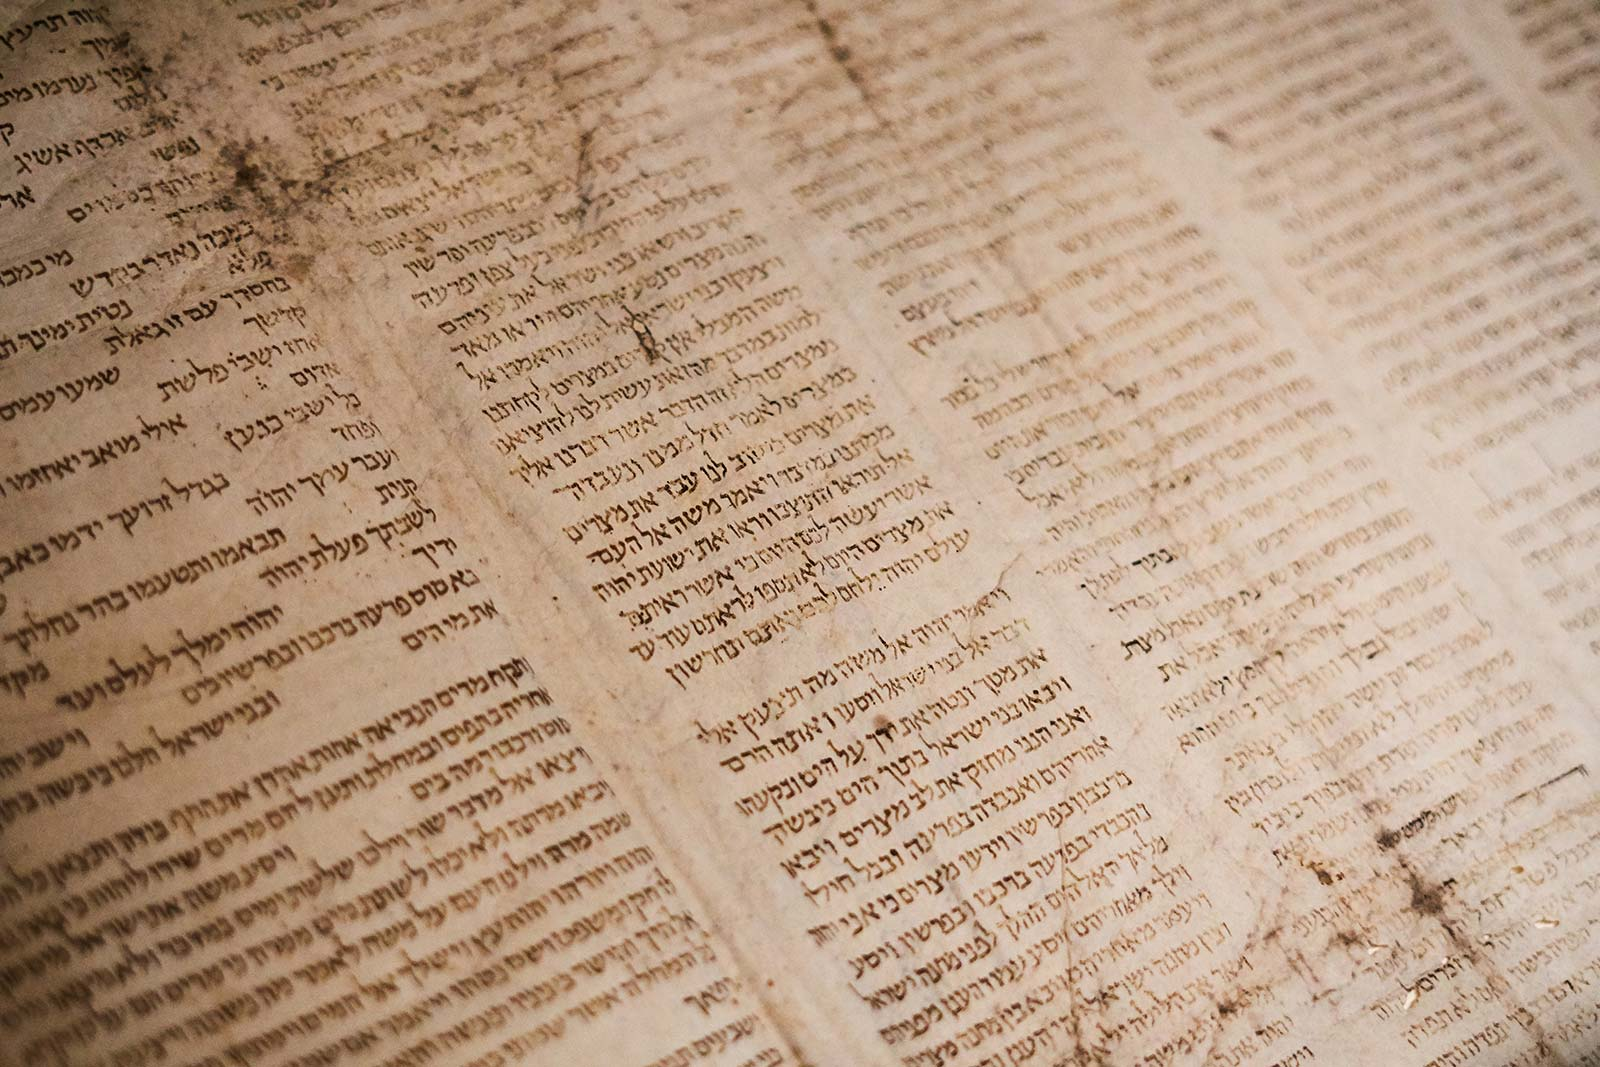 Problems with Old Testament Texts on Samson